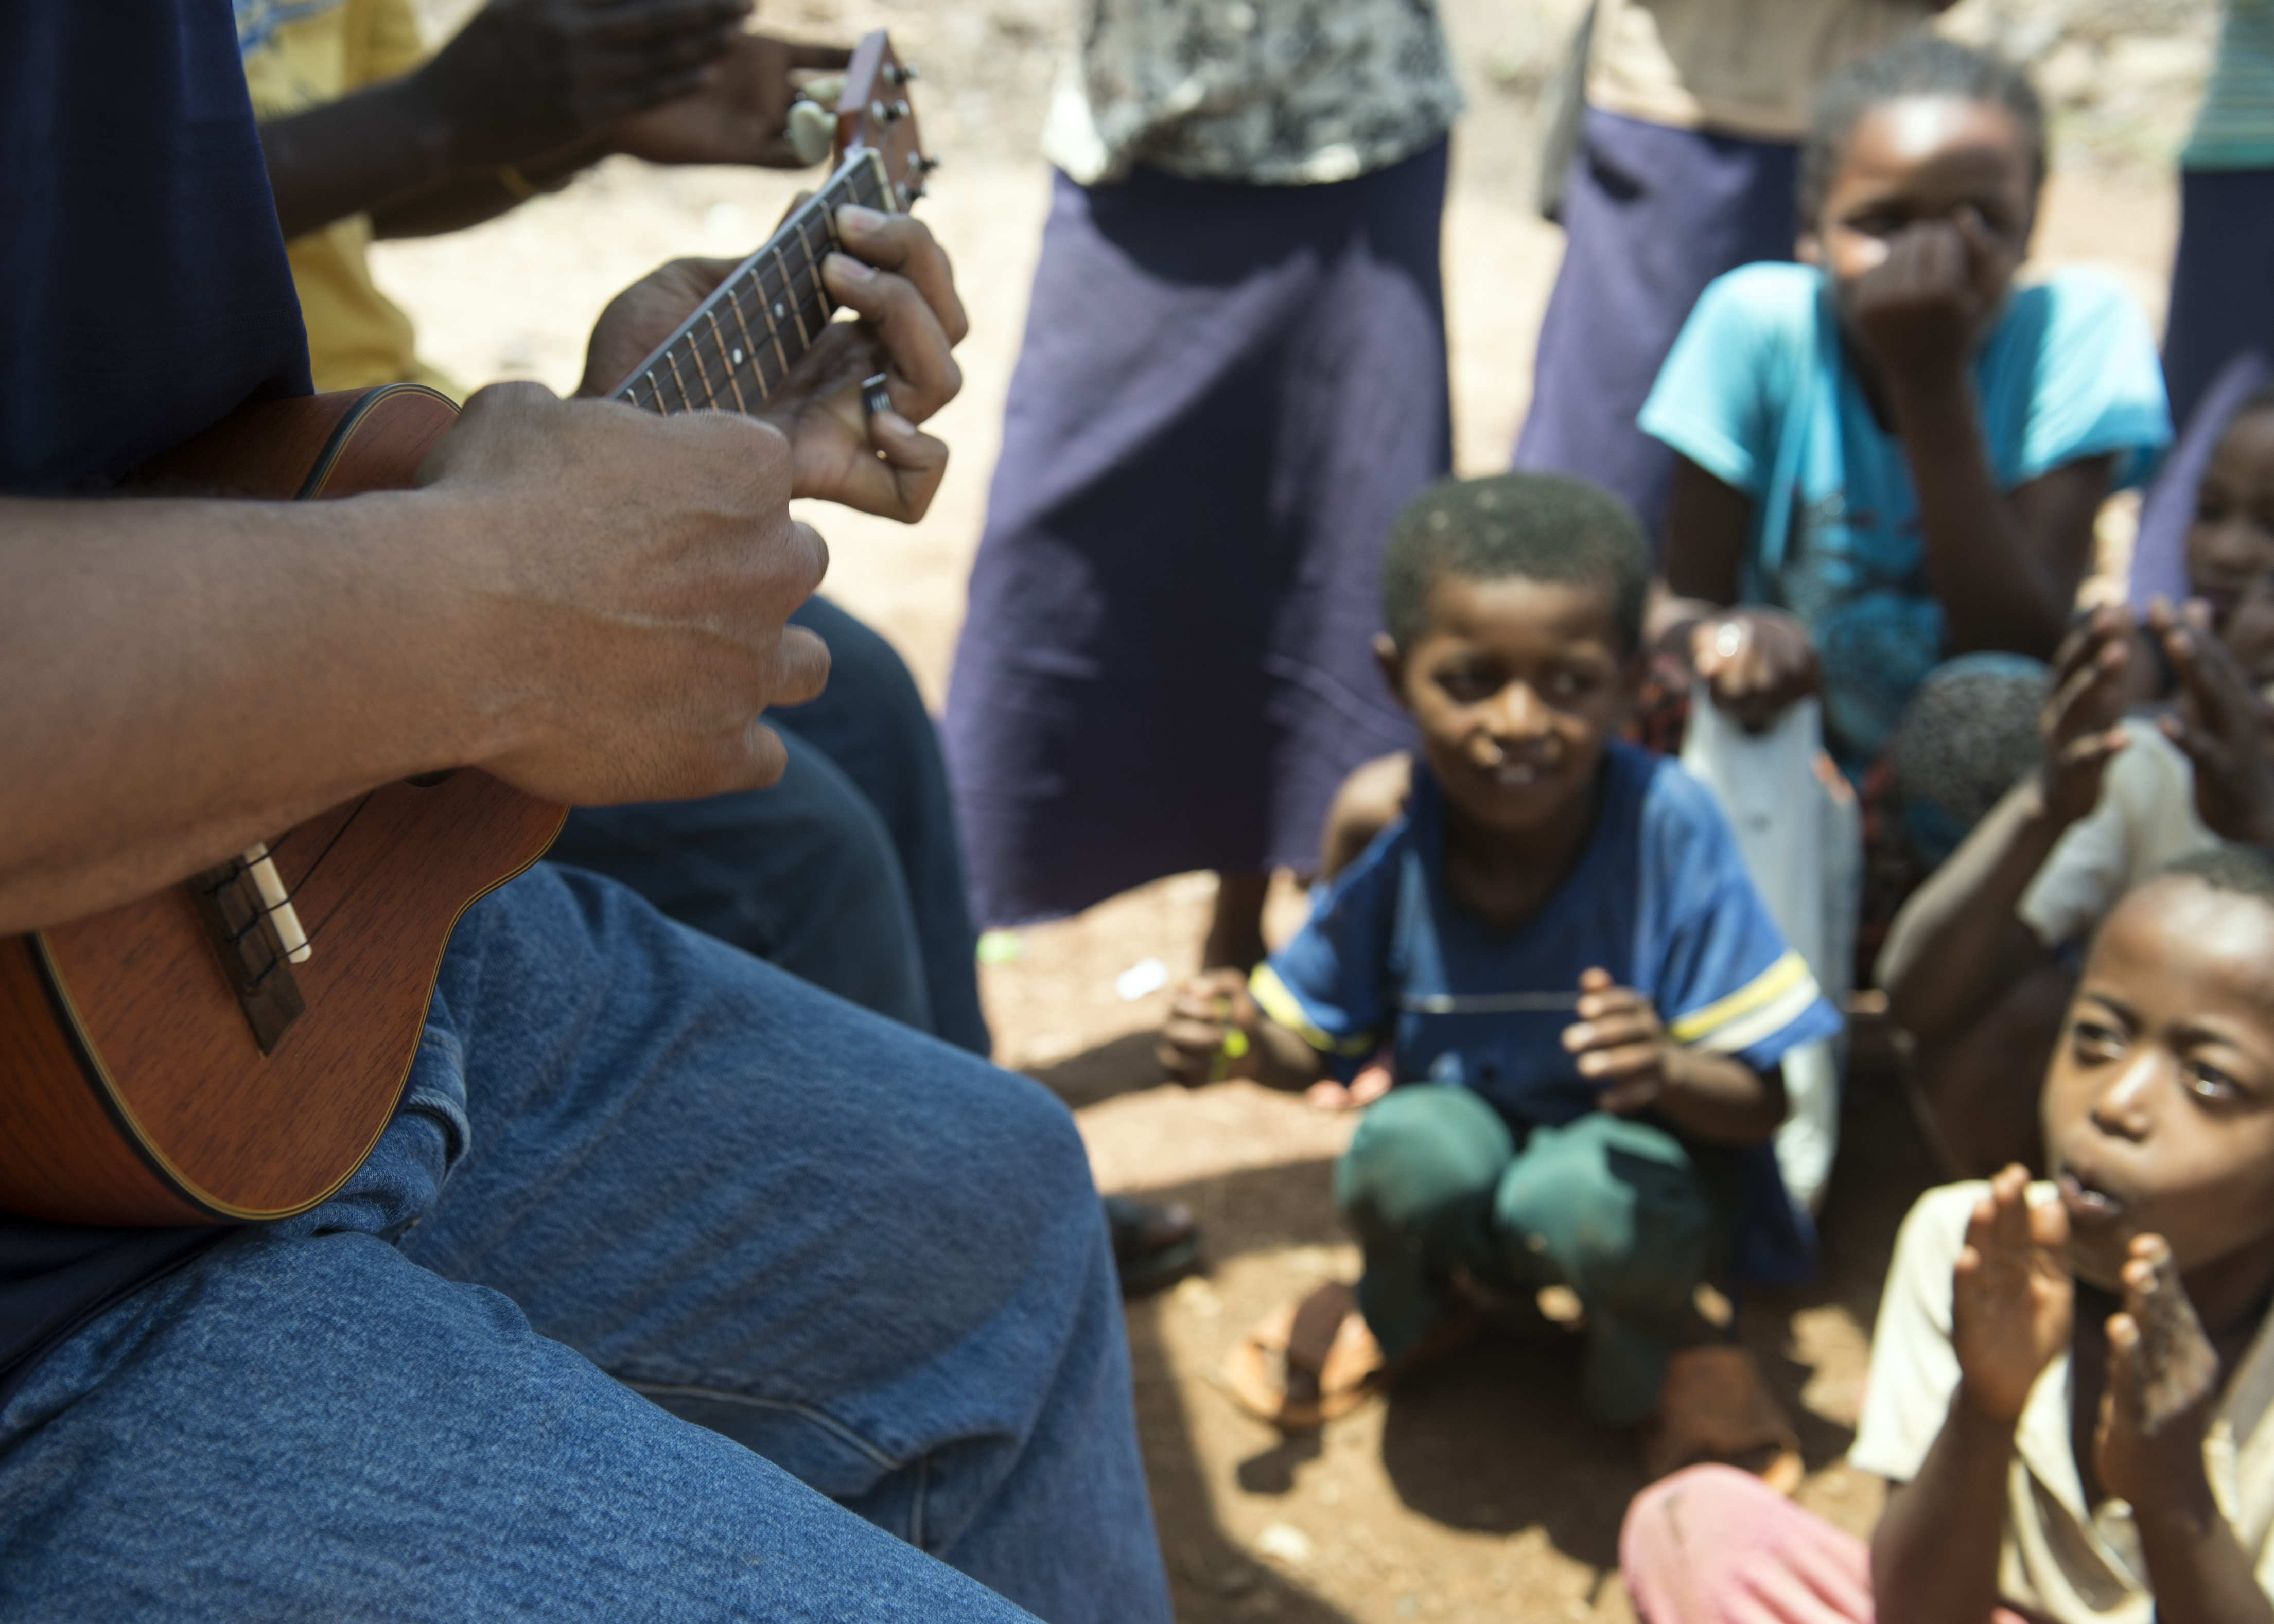 U.S. Army Chaplain (Maj.) Lawrence Allison, Combined Joint Task Force-Horn of Africa Religious Affairs deputy director, plays the ukulele to group of orphans in East Africa, Apr. 3, 2015.  Allison played several Hawaiian songs to entertain and boost the morale of the children. (U.S. Air Force photo by Staff Sgt. Kevin Iinuma)